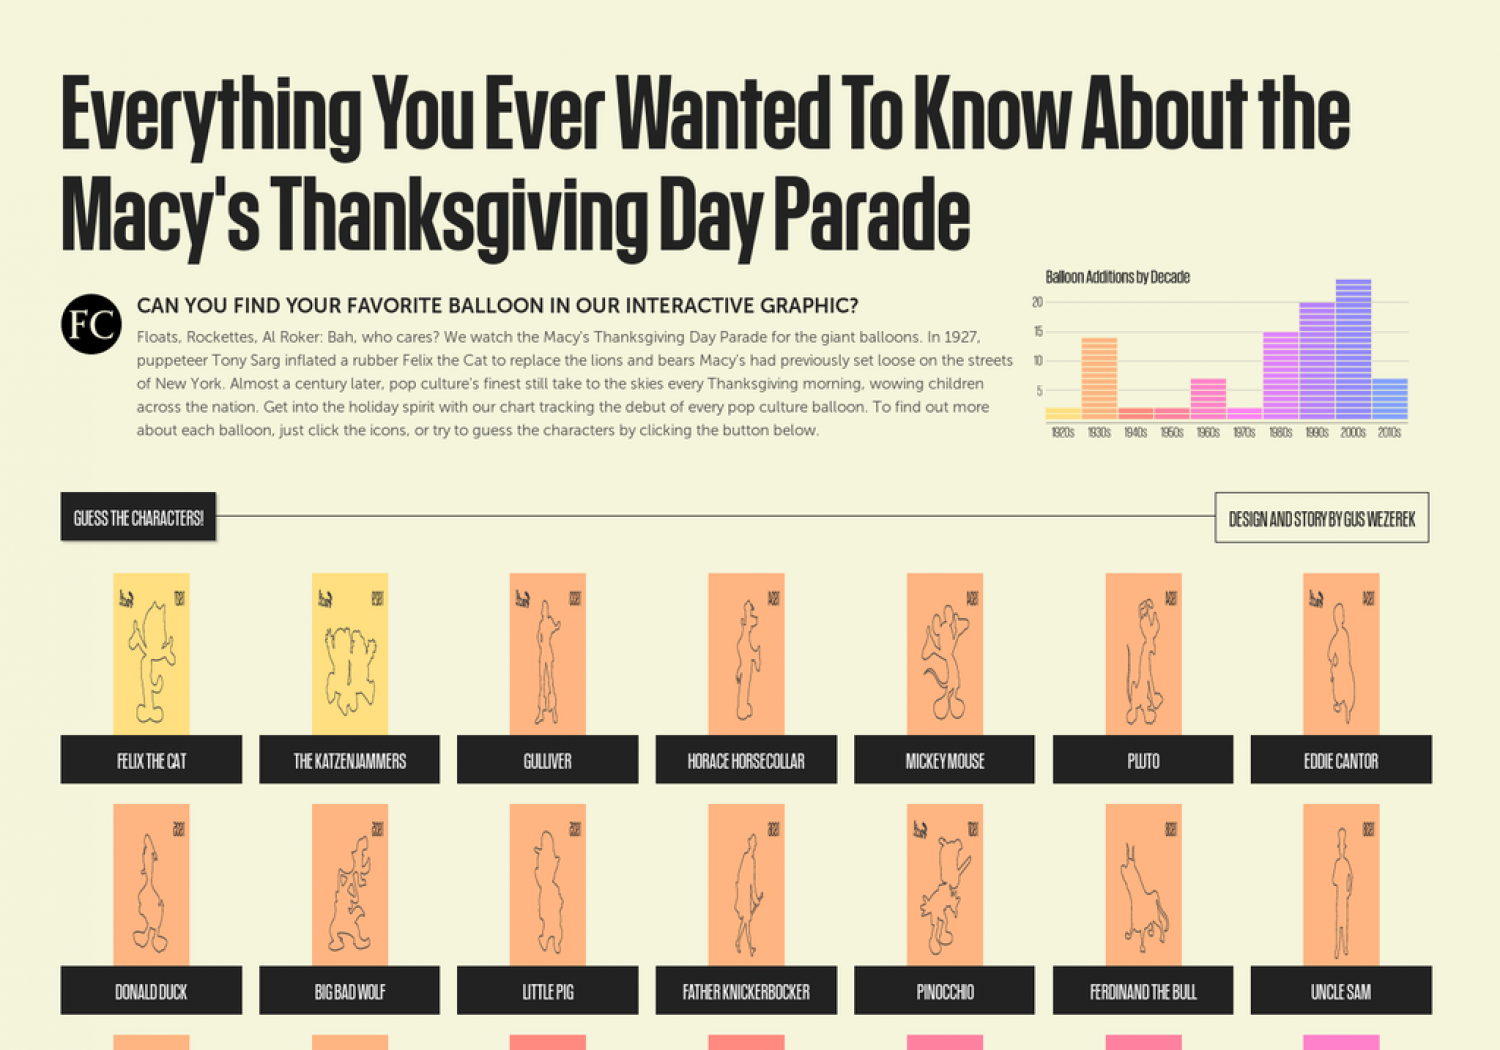 Everything You Ever Wanted to Know About the Macy's Thanksgiving Day Parade Infographic